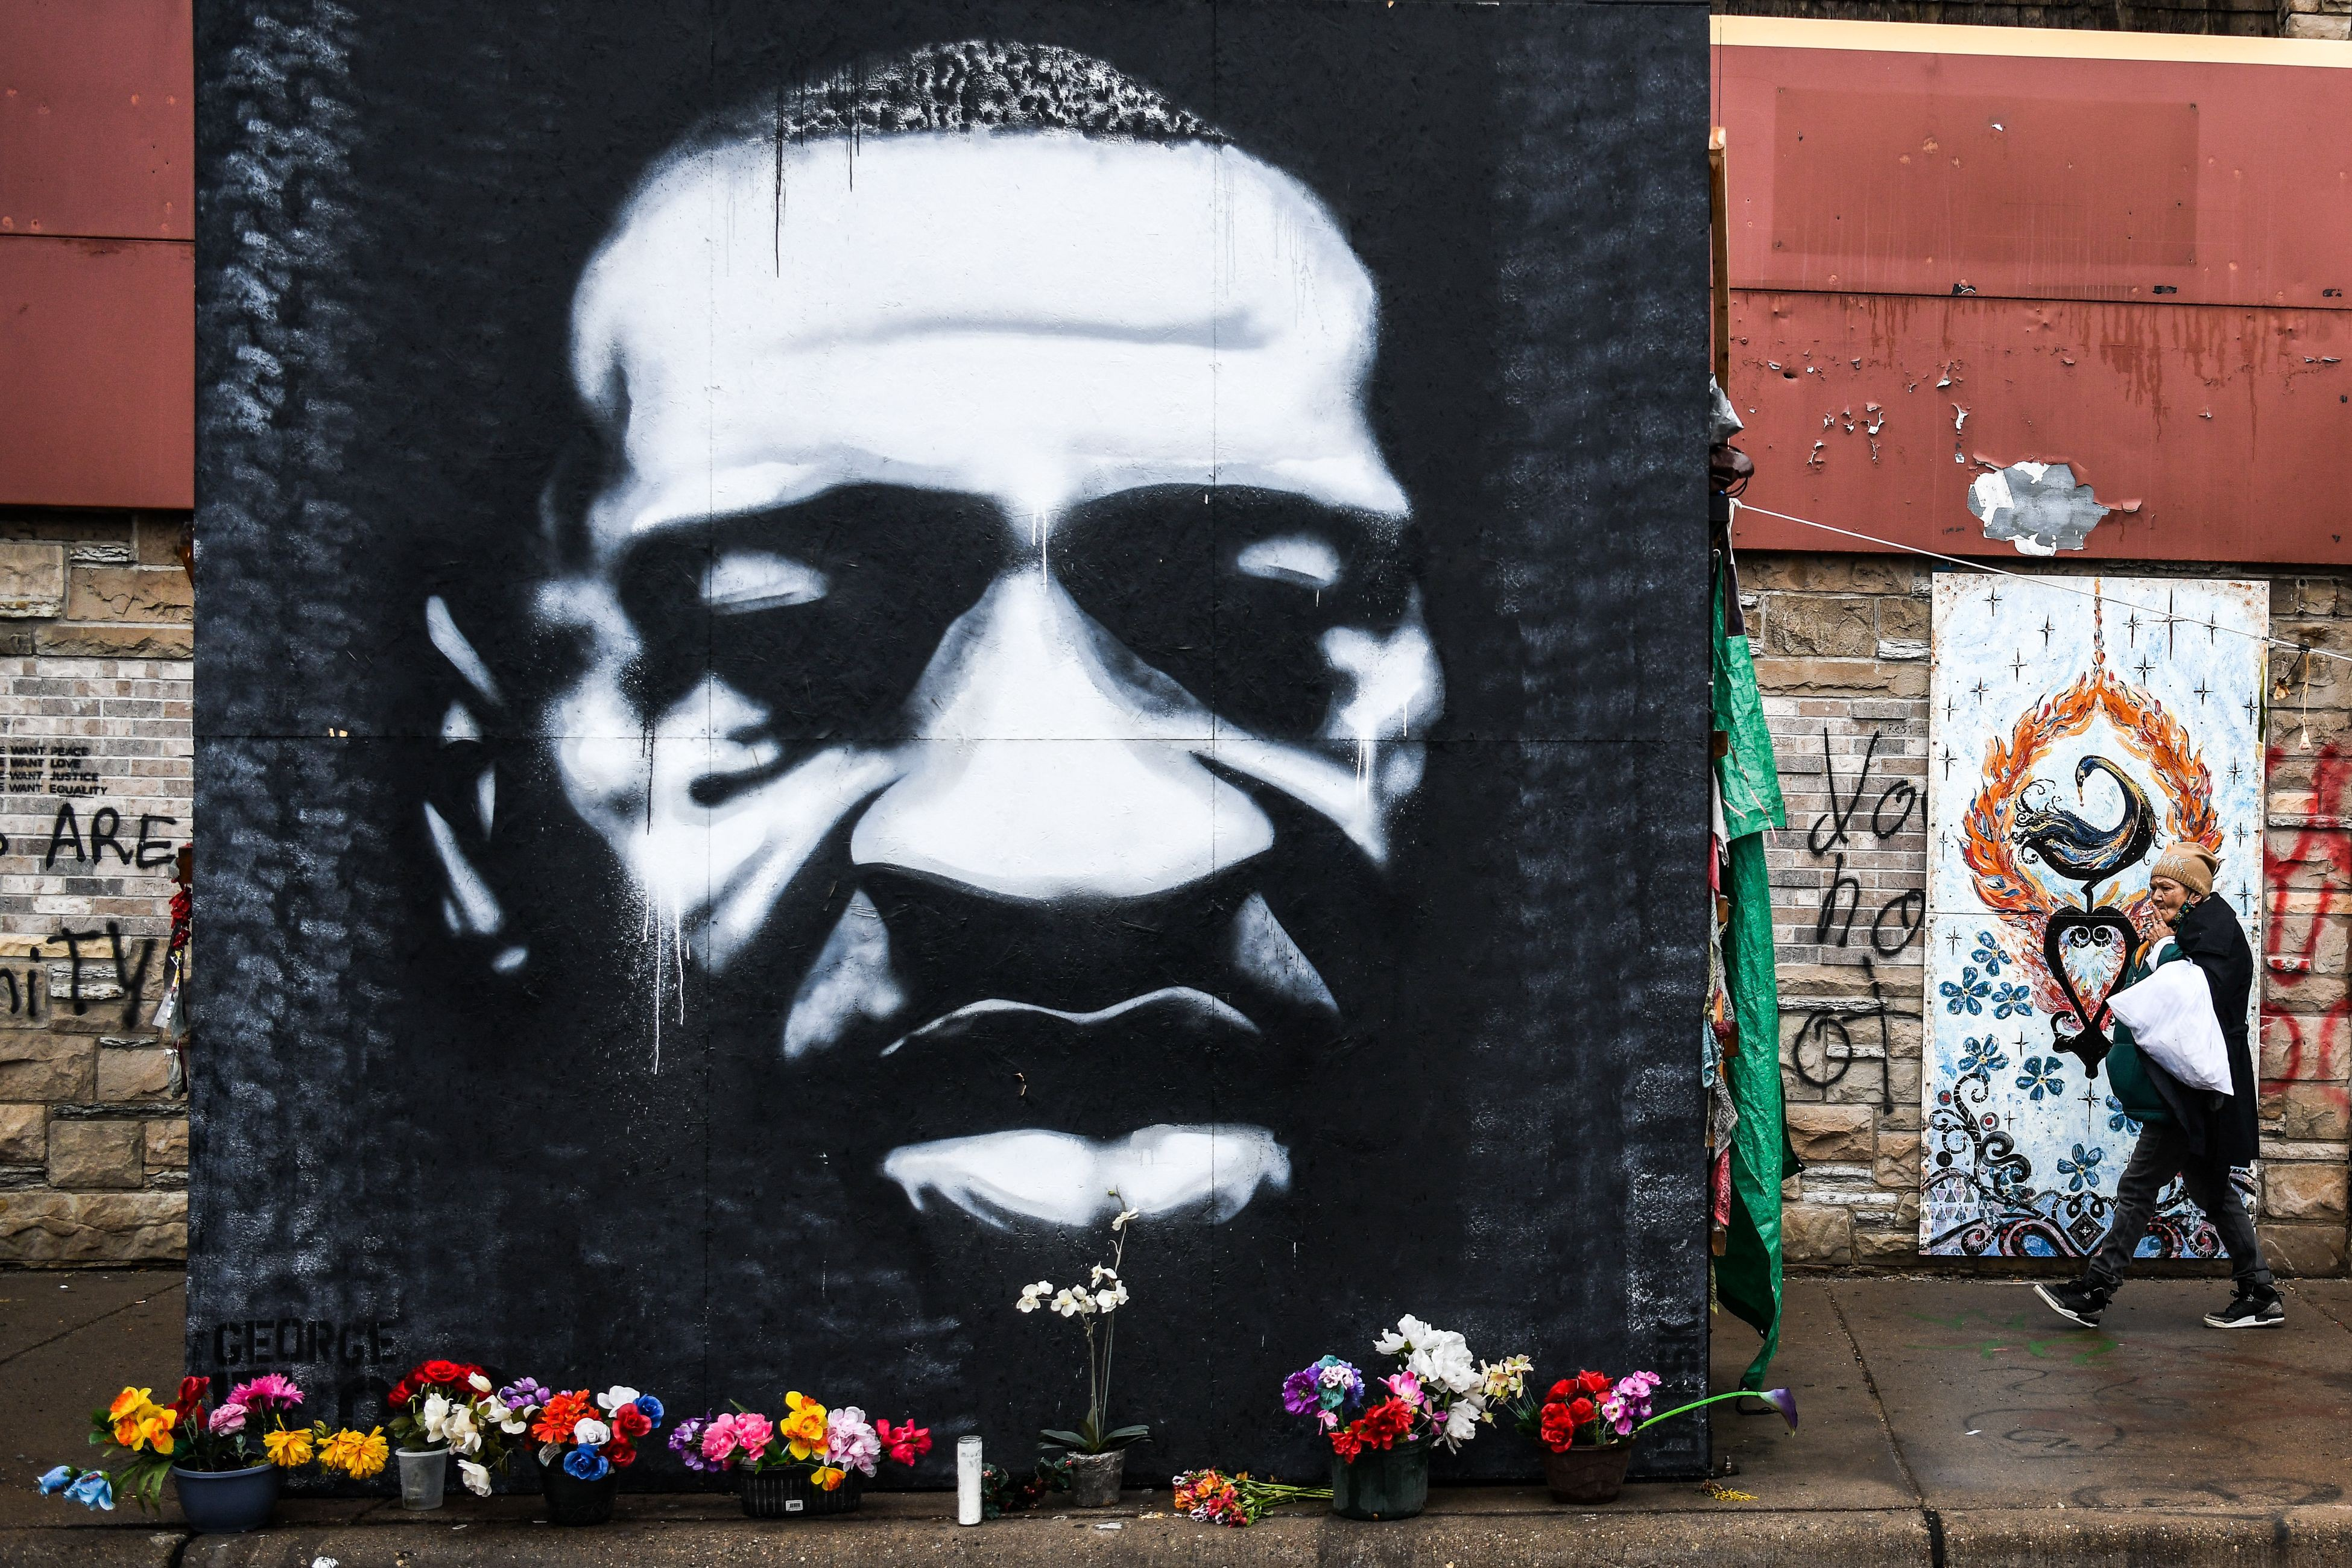 Black and white mural of George Floyd with flowers resting in front.